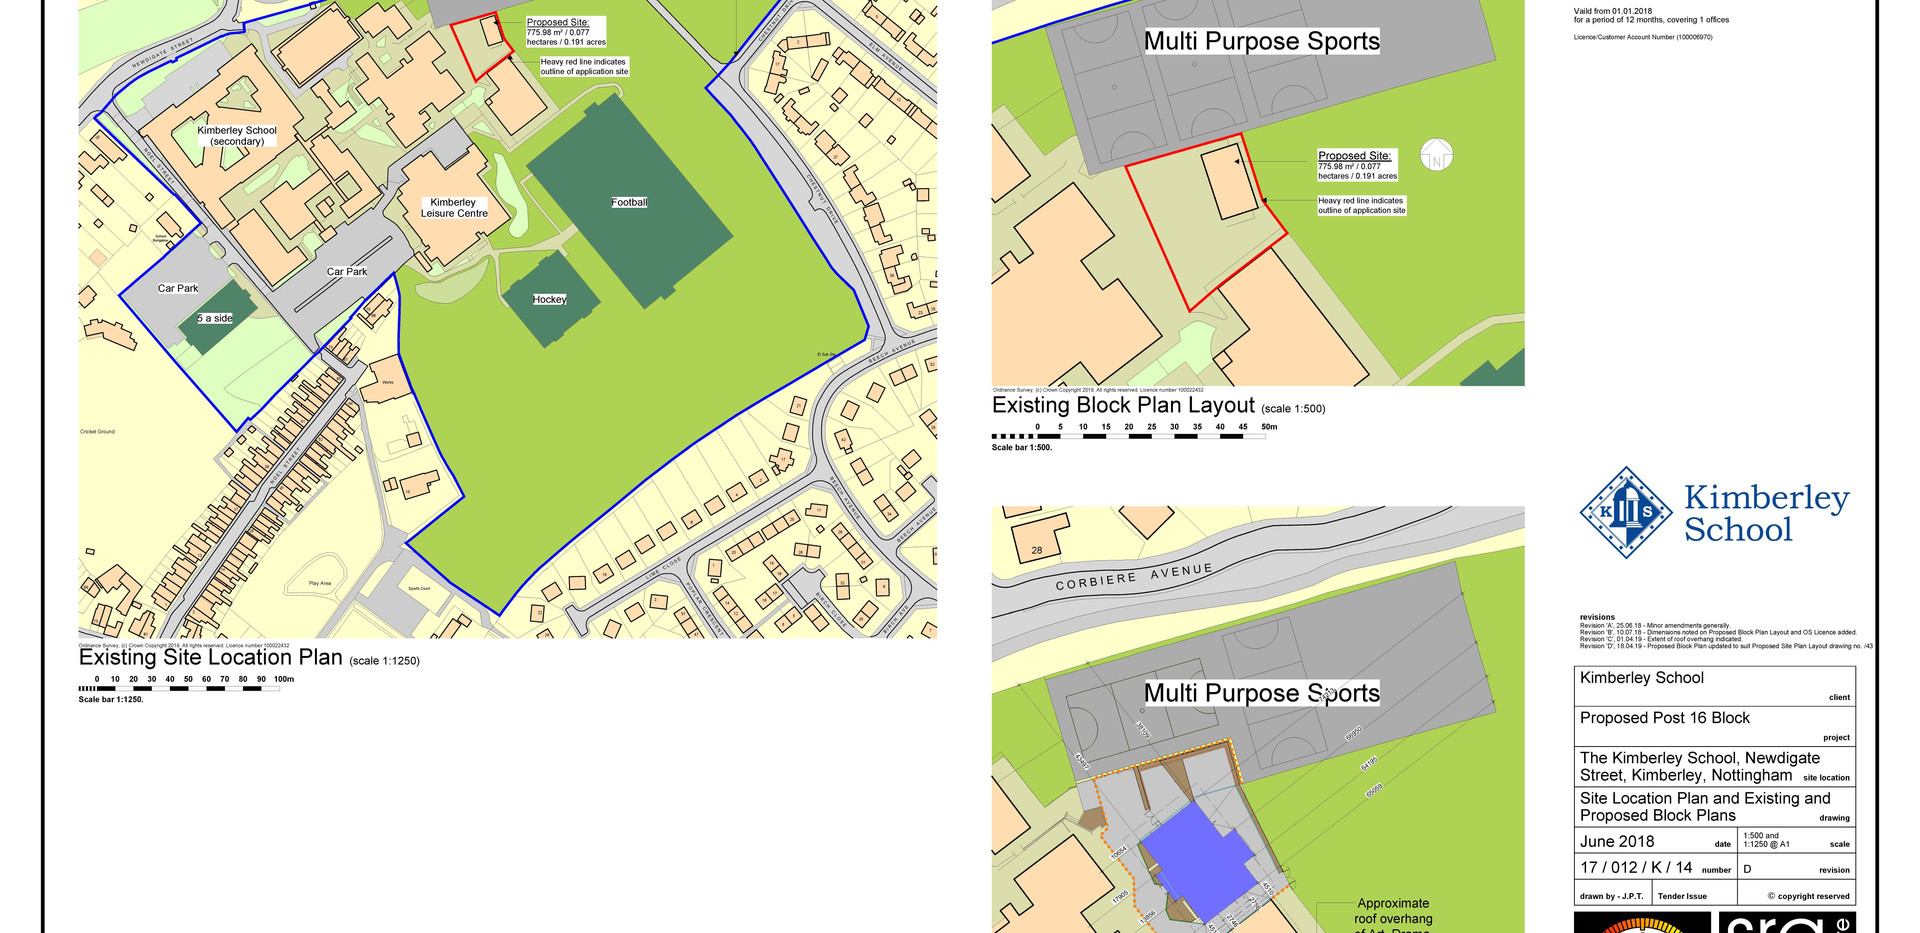 14D_Site Location Plan and Existing and